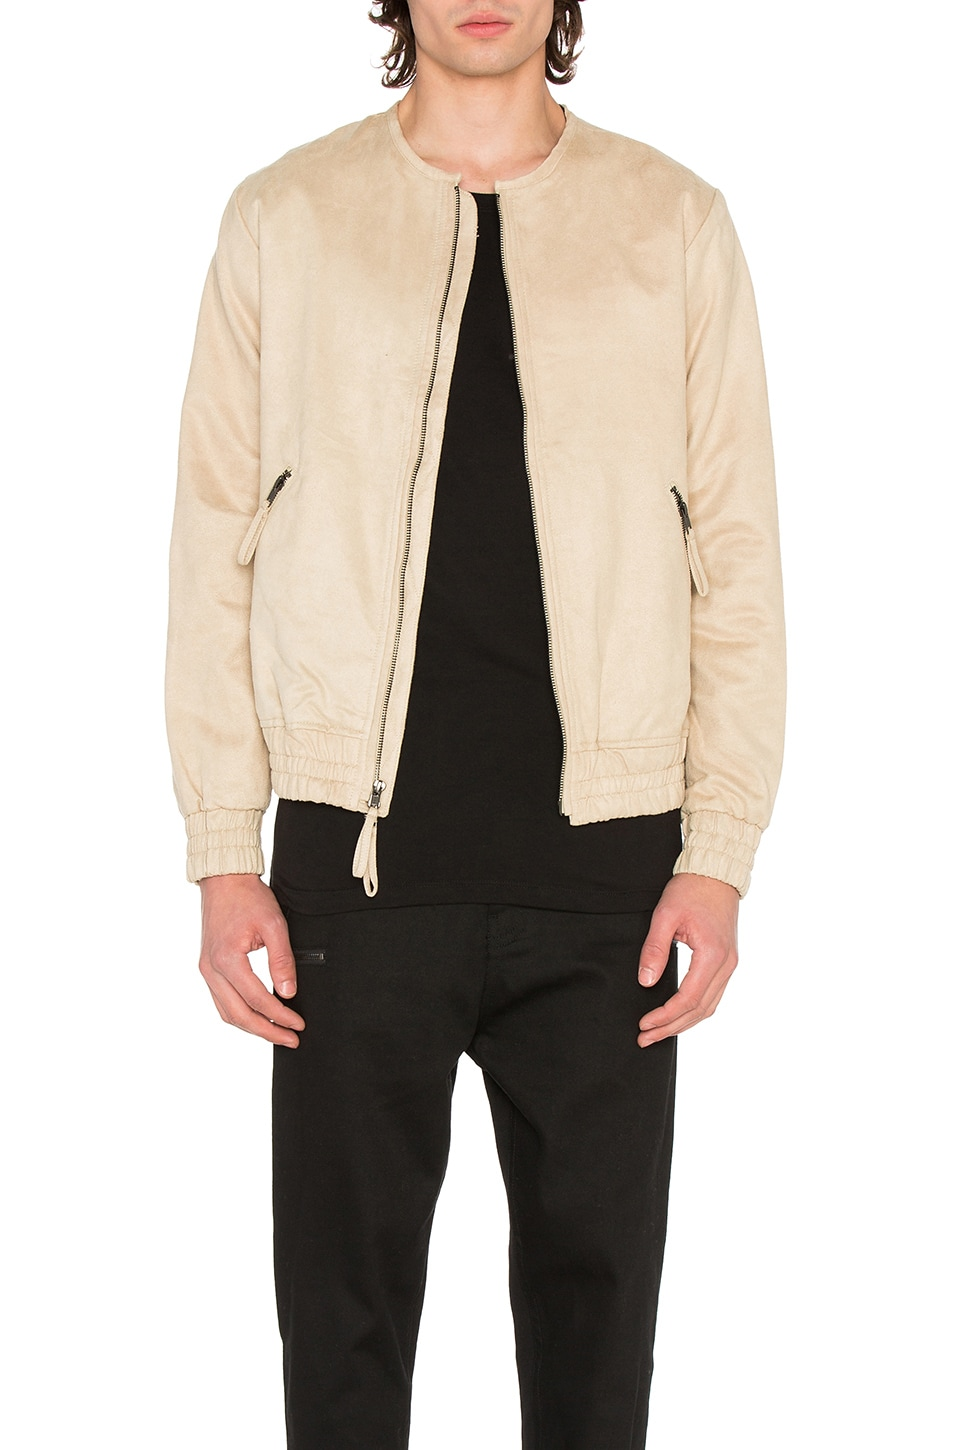 Ervin Jacket by Publish